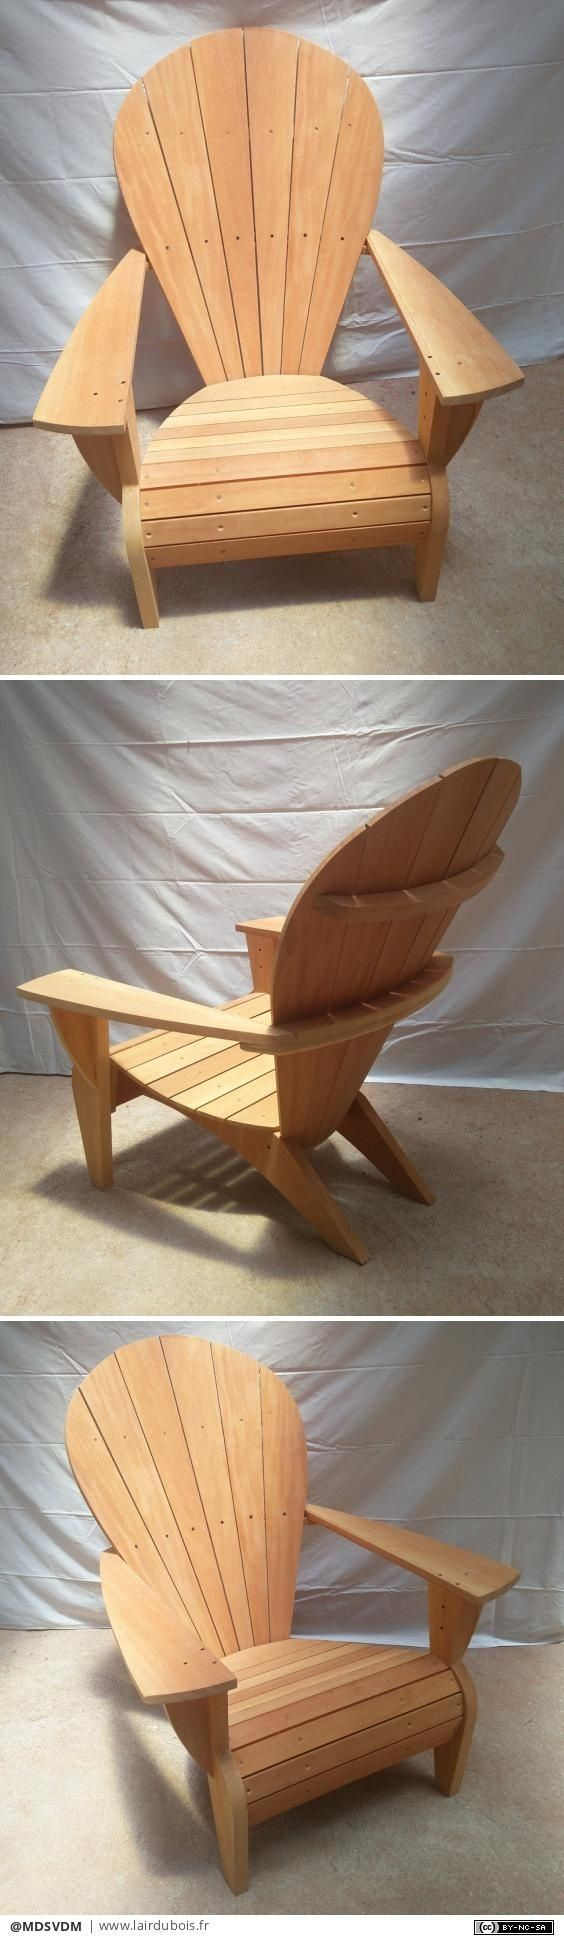 Best 25 adirondack chairs ideas on pinterest adirondack for Chaise adirondack bois